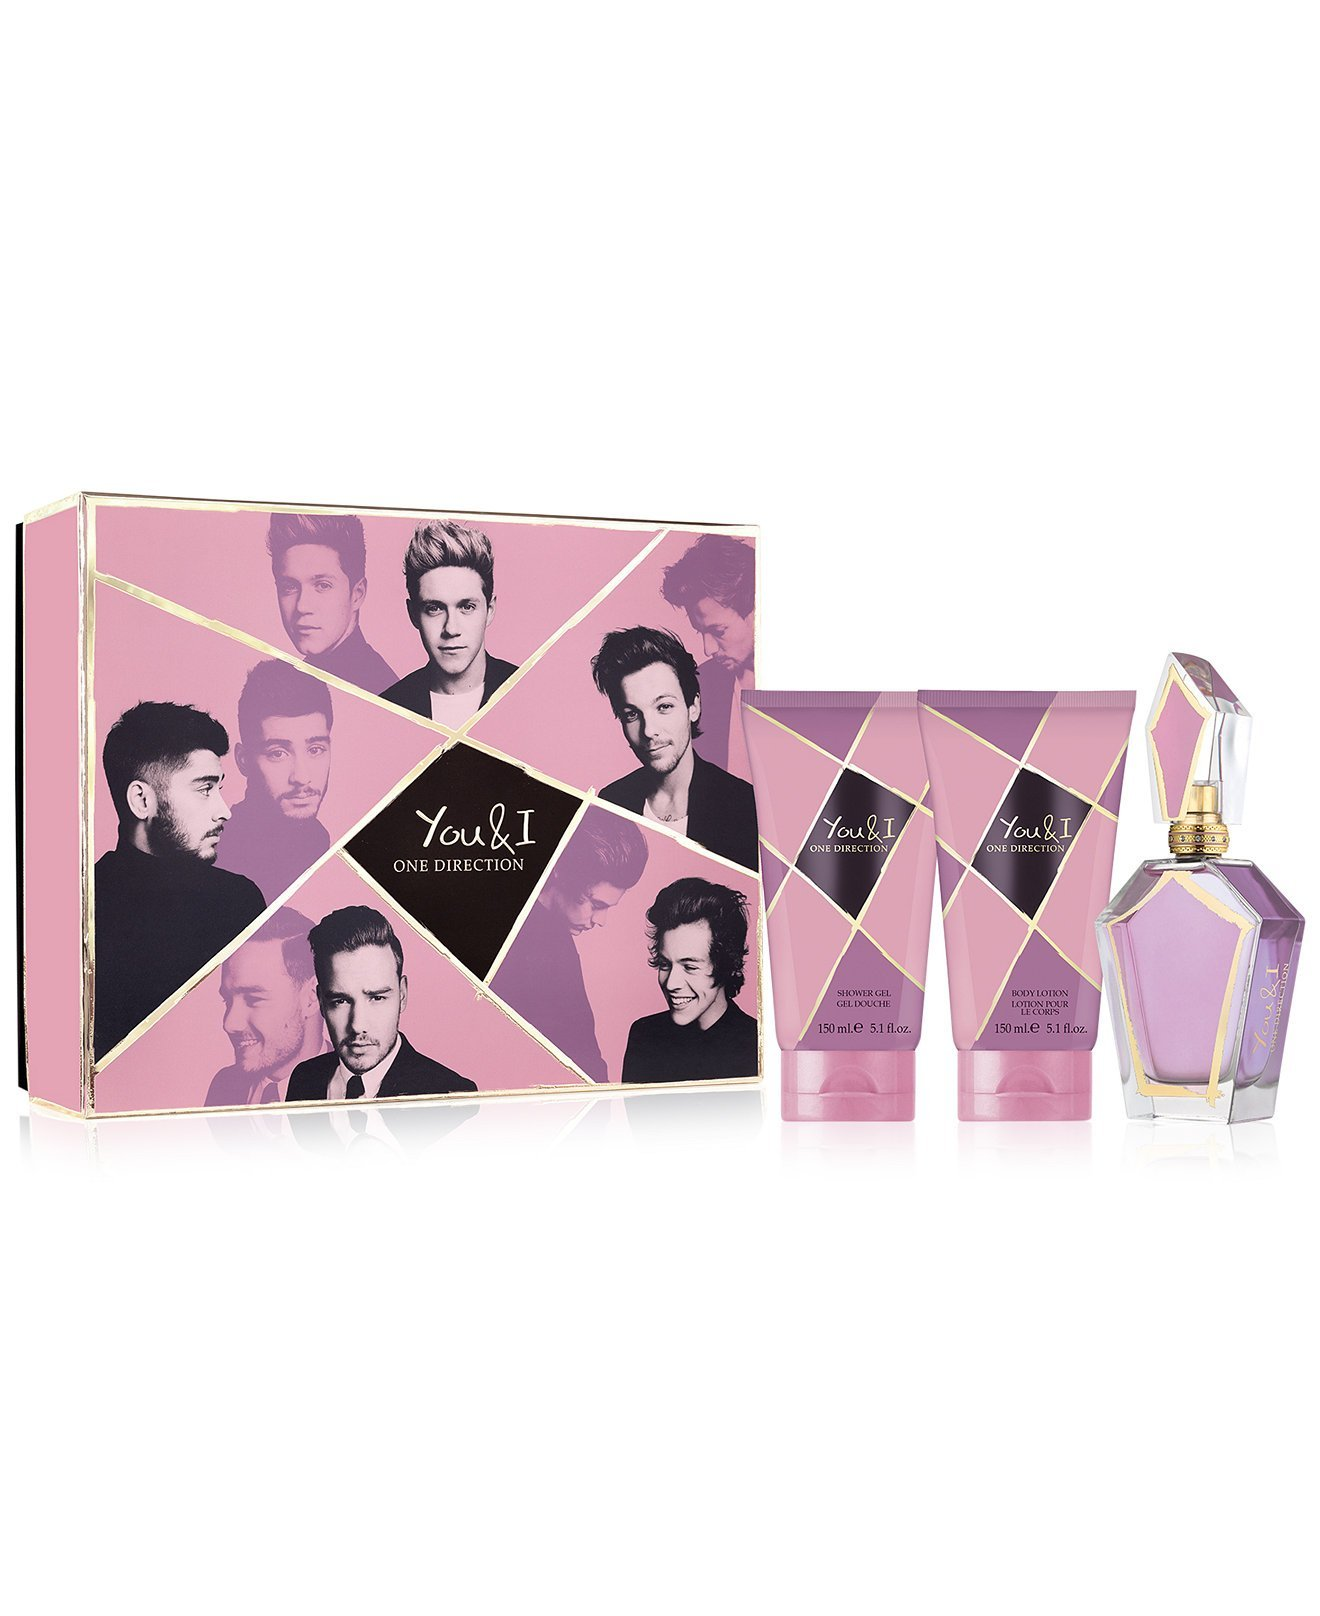 One Direction You and I 3 Piece Gift Set